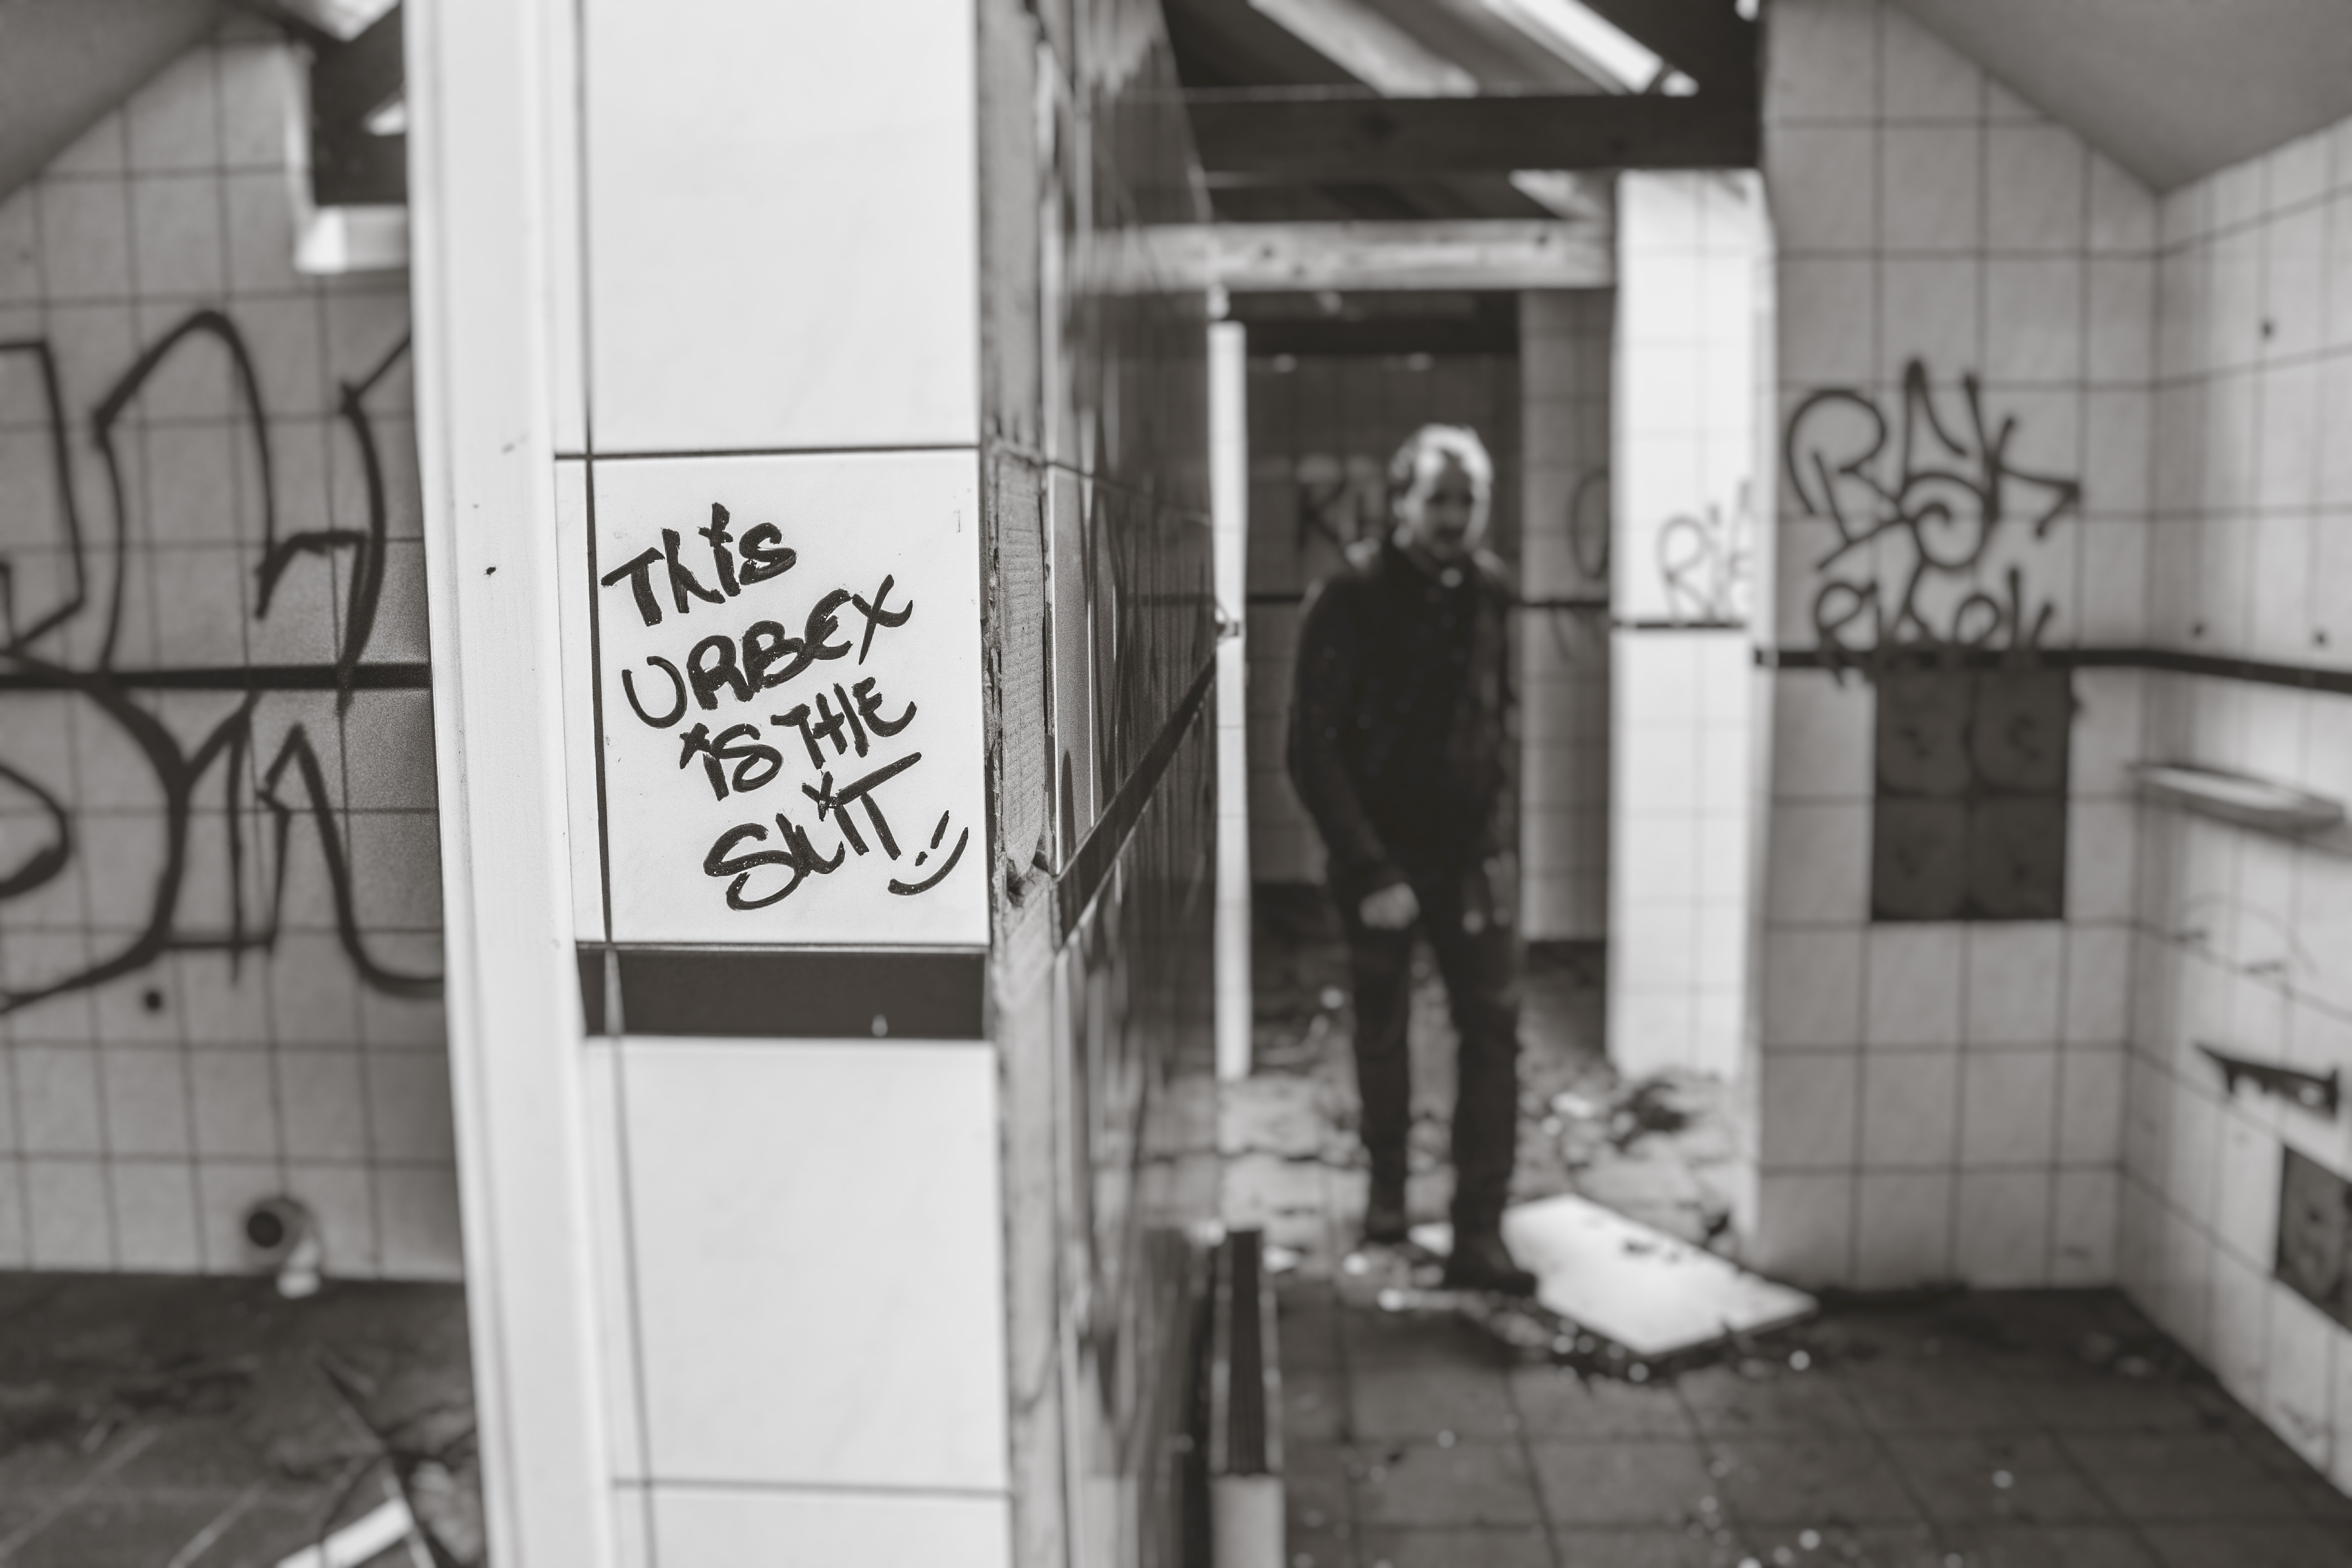 Black and white shot of person in decaying bathroom with graffiti on walls in Doel